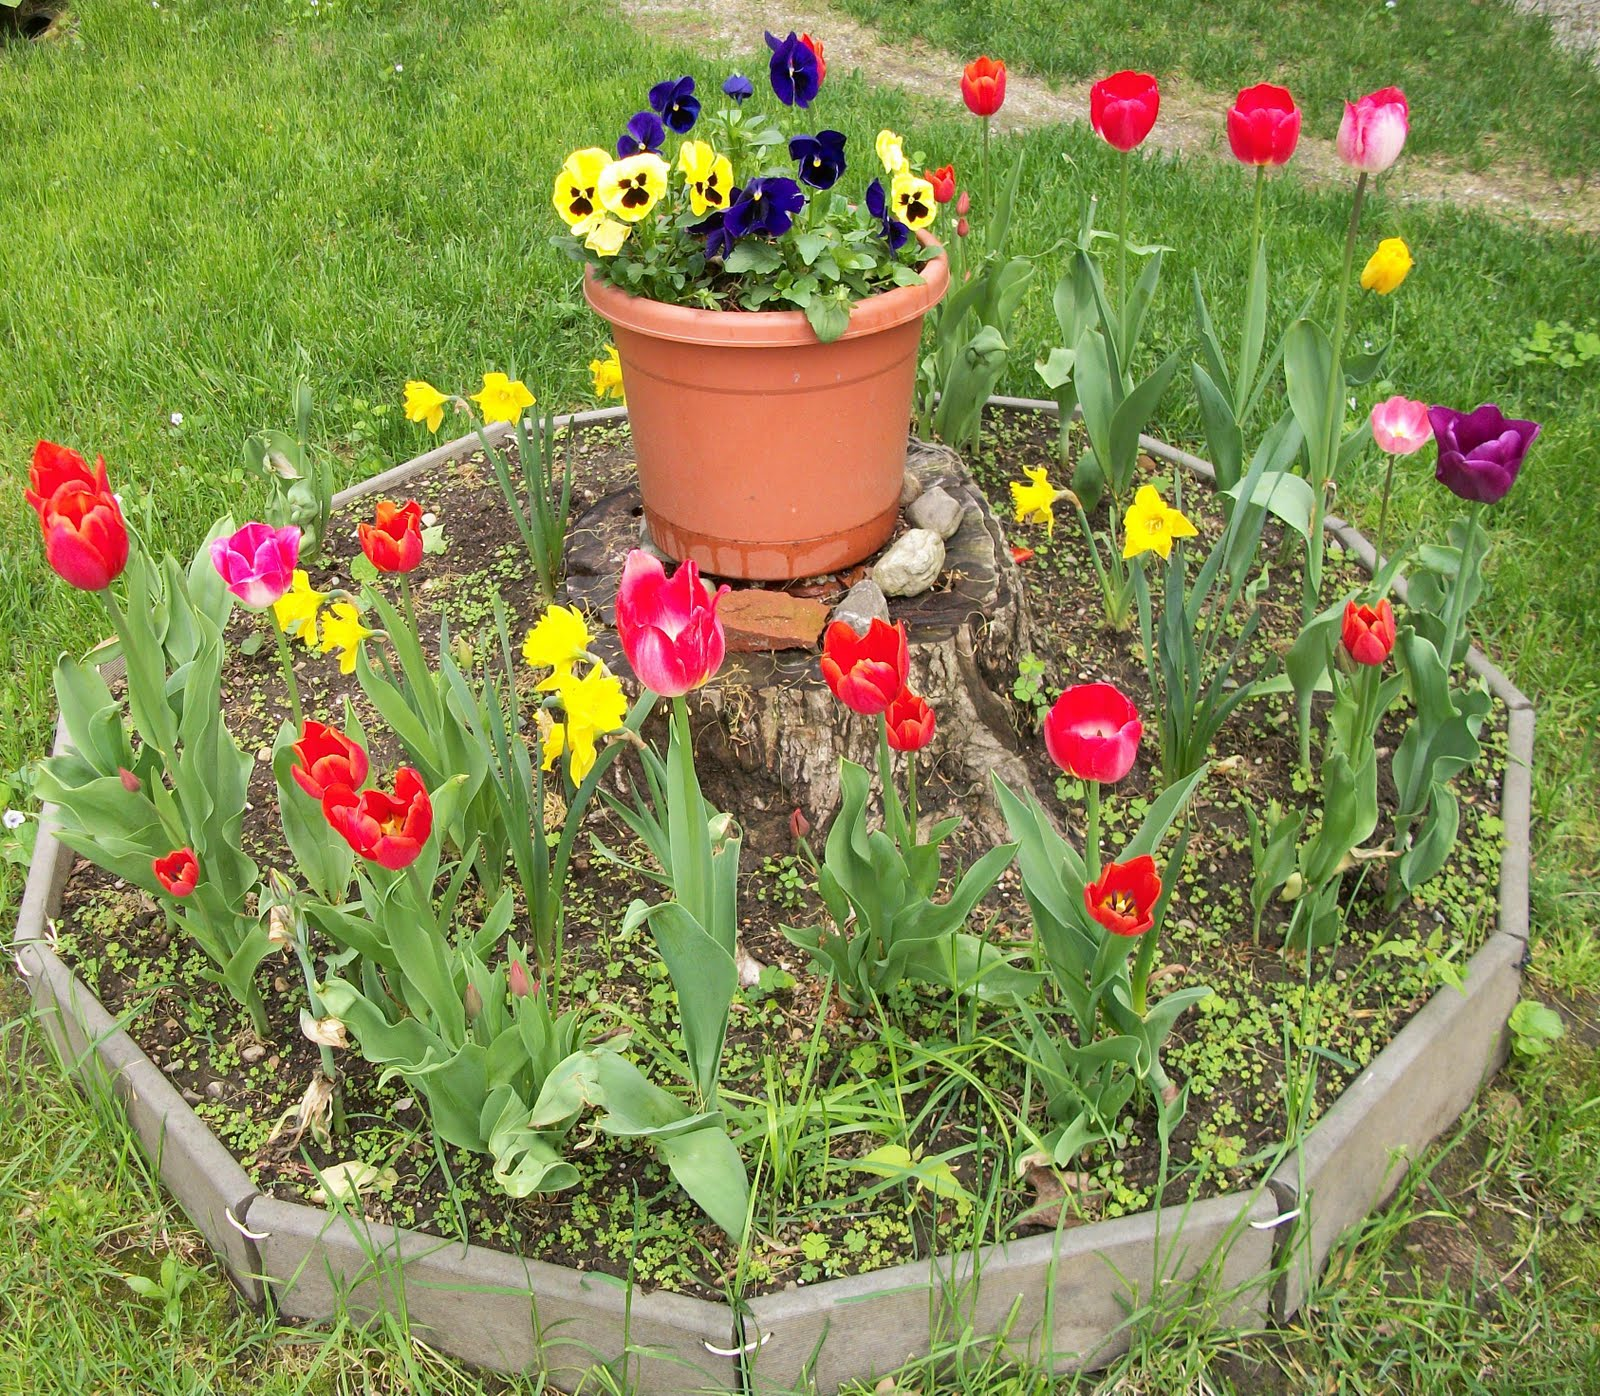 Small Round Flower Garden Brings Color And Variety